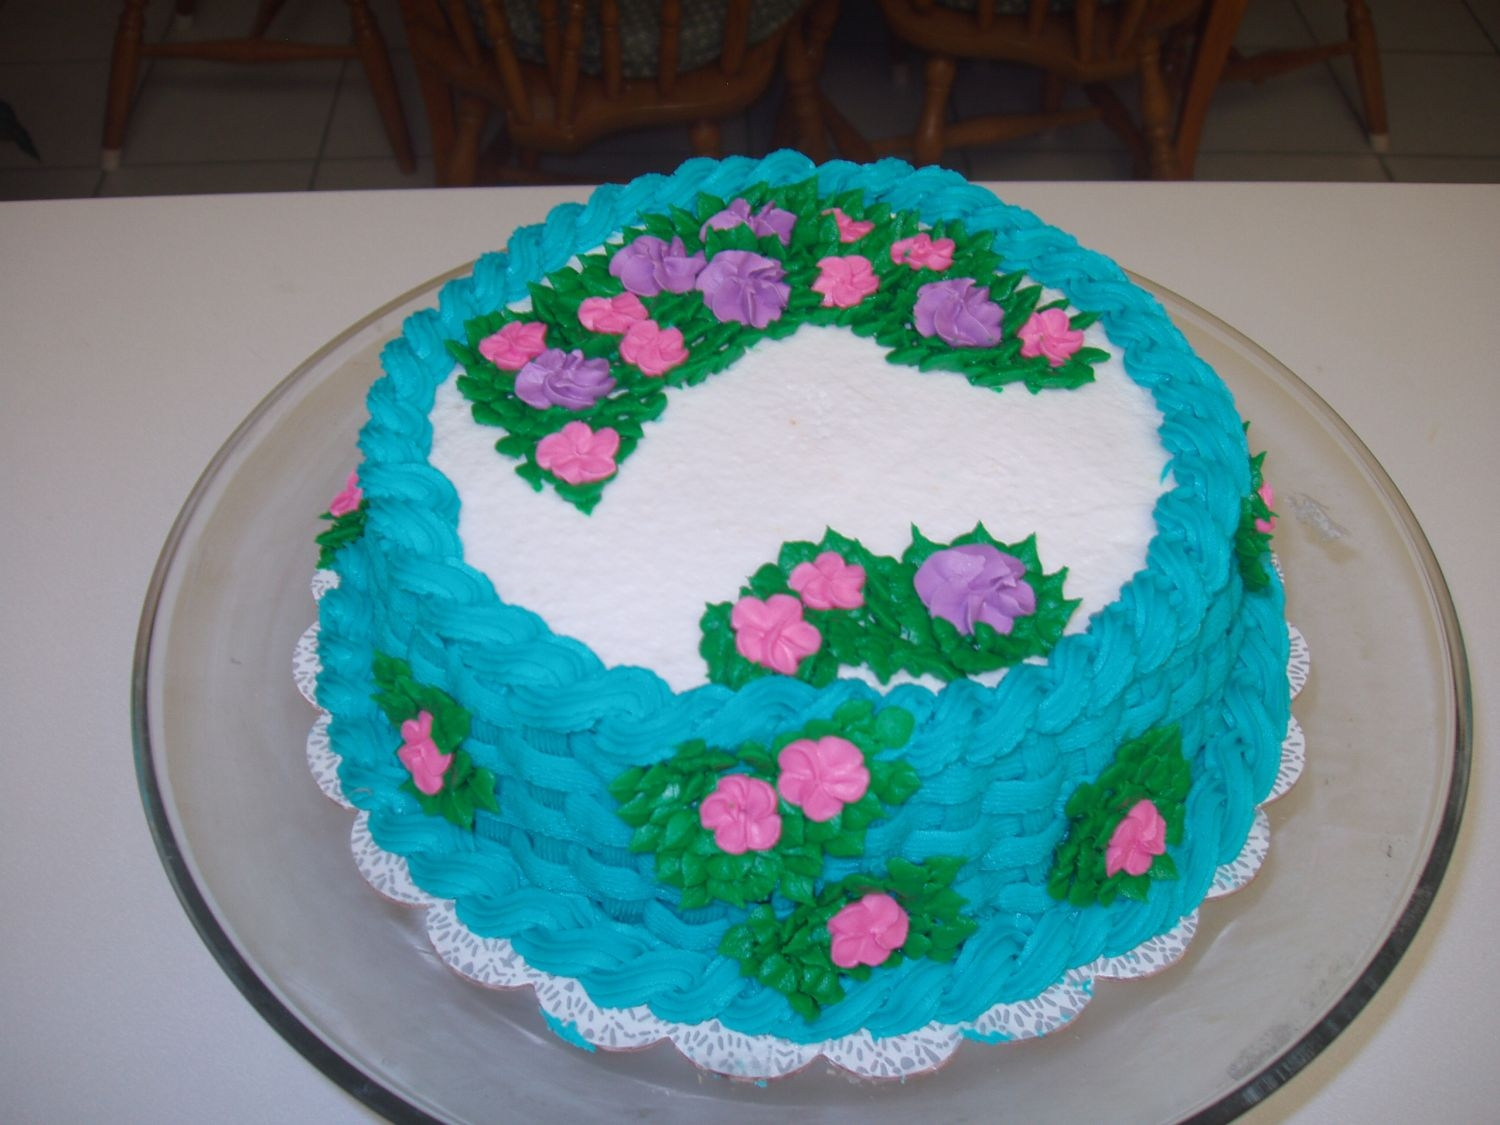 Basket Weave This was my first basket weave cake. The cake slide off the turn table that I was working on and my fingers went right into the cake in an...